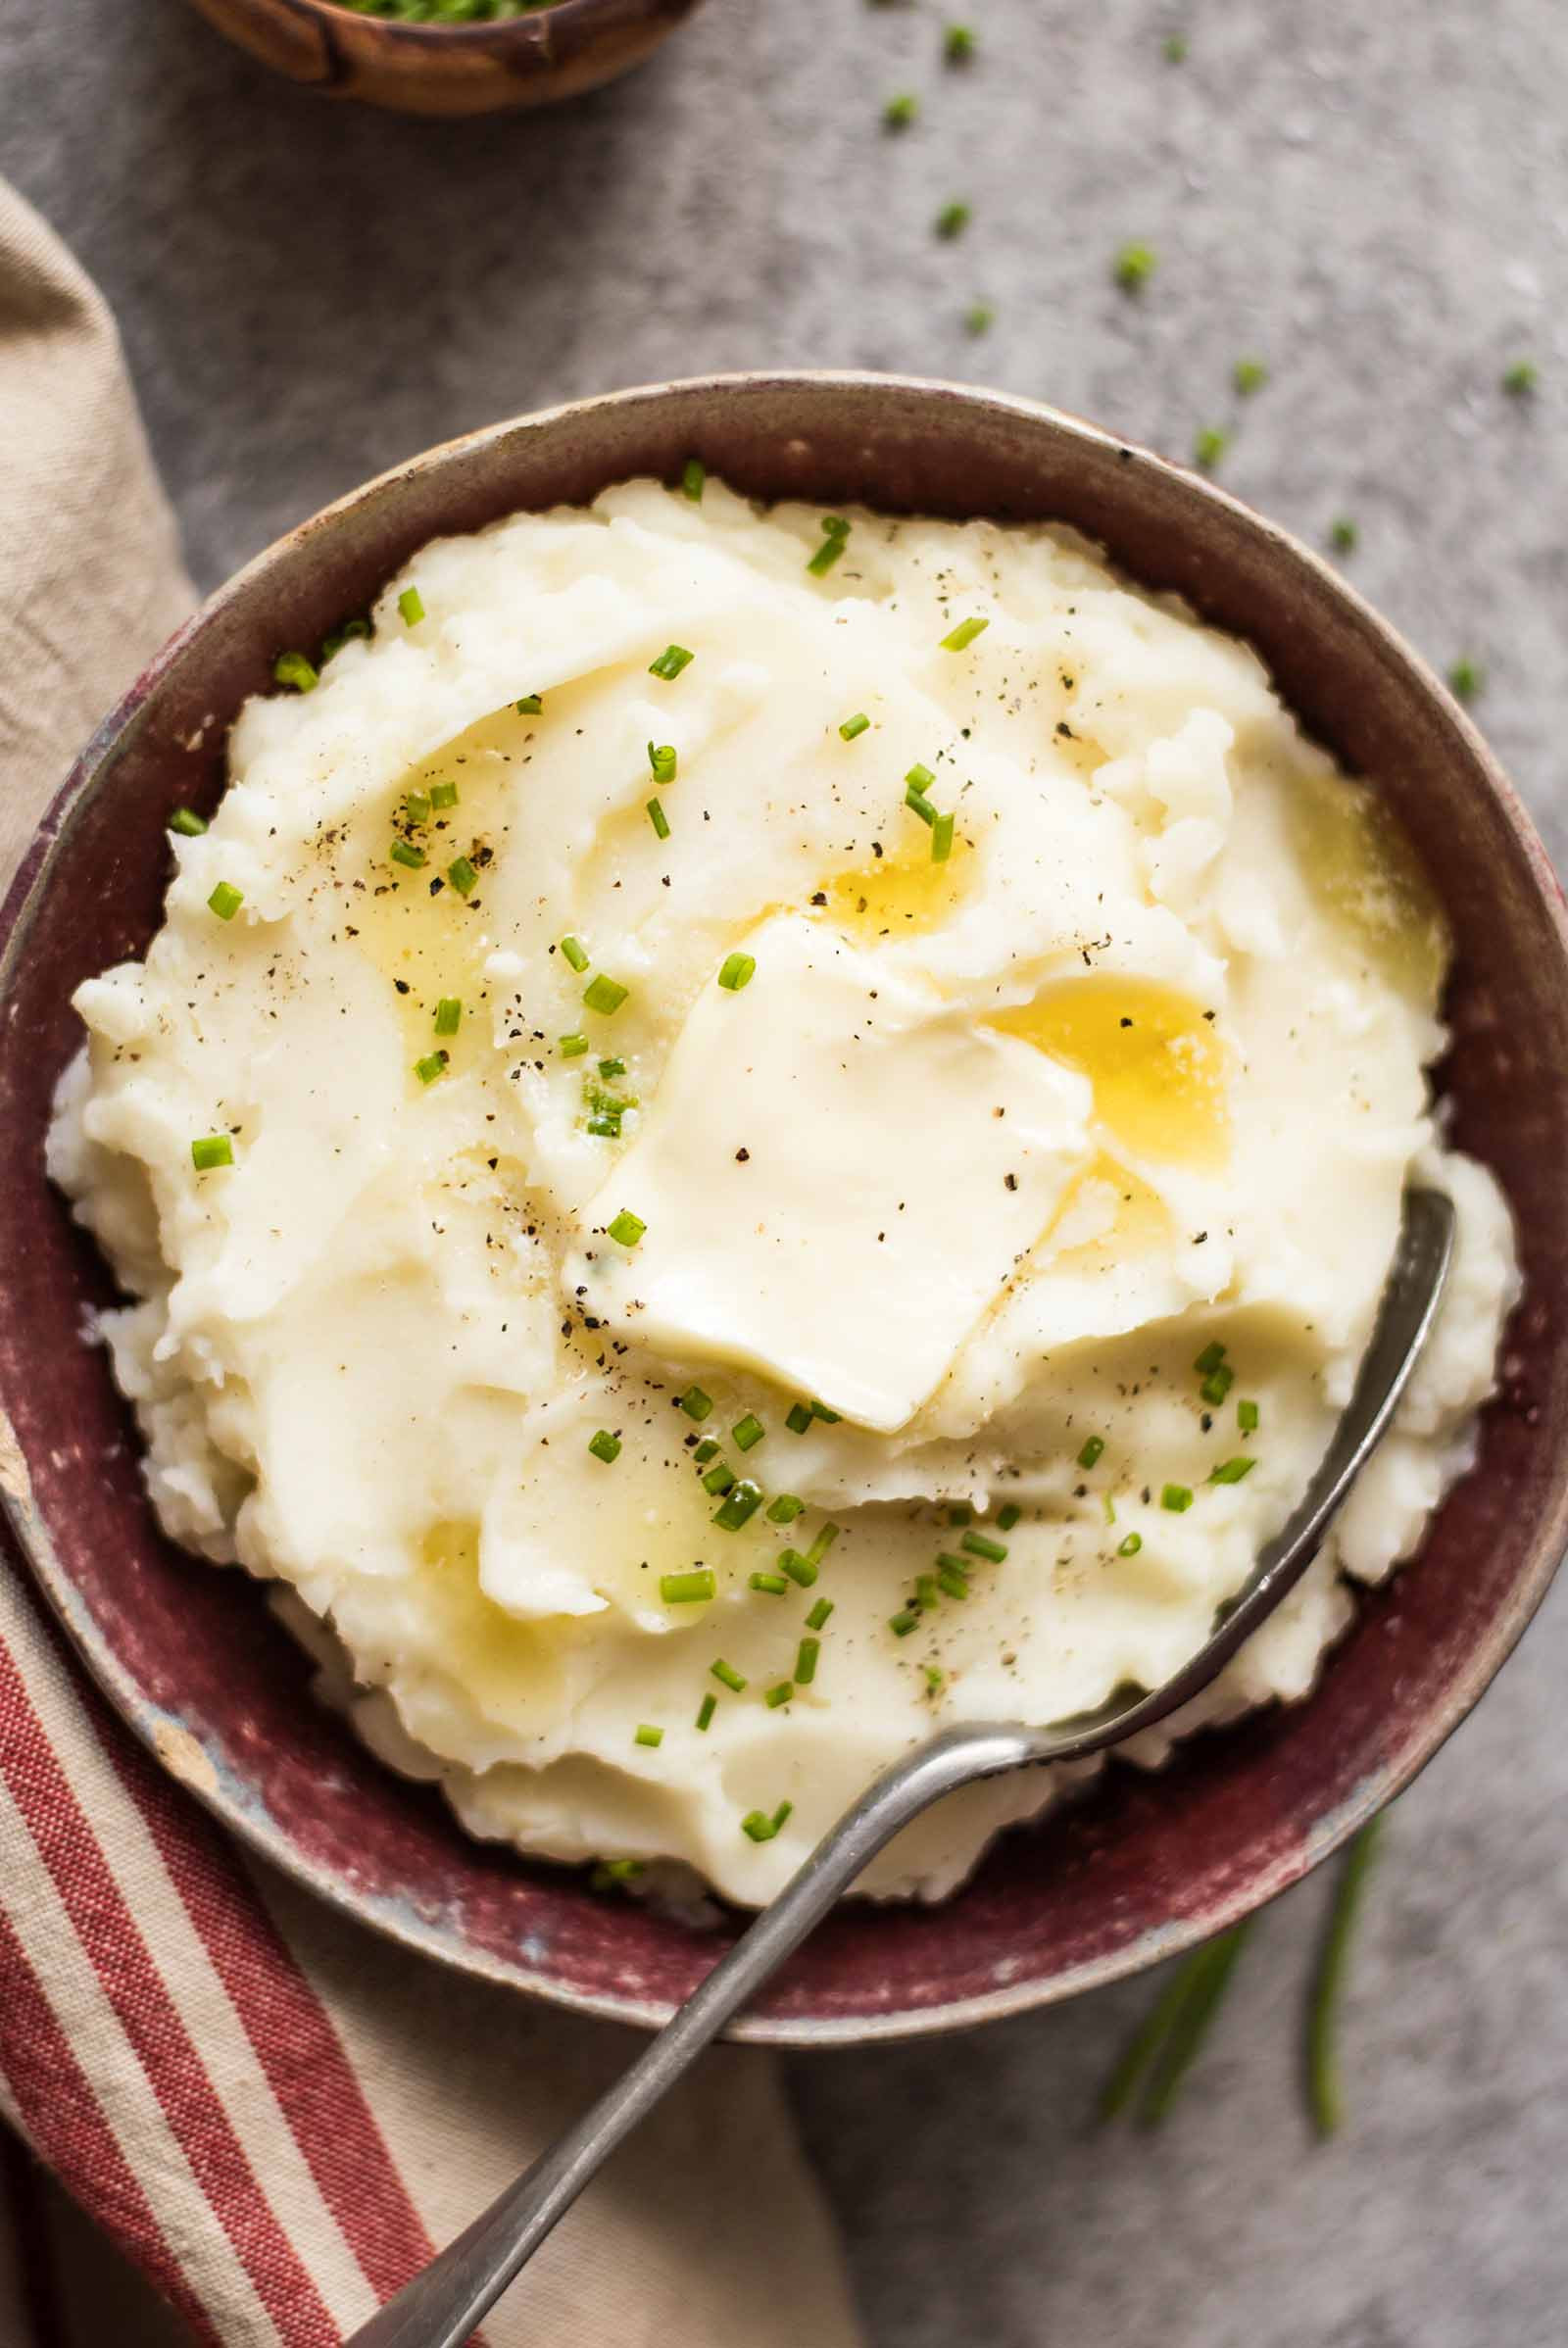 Mashed Potatoes Slow Cooker  Slow Cooker Mashed Potatoes Recipe